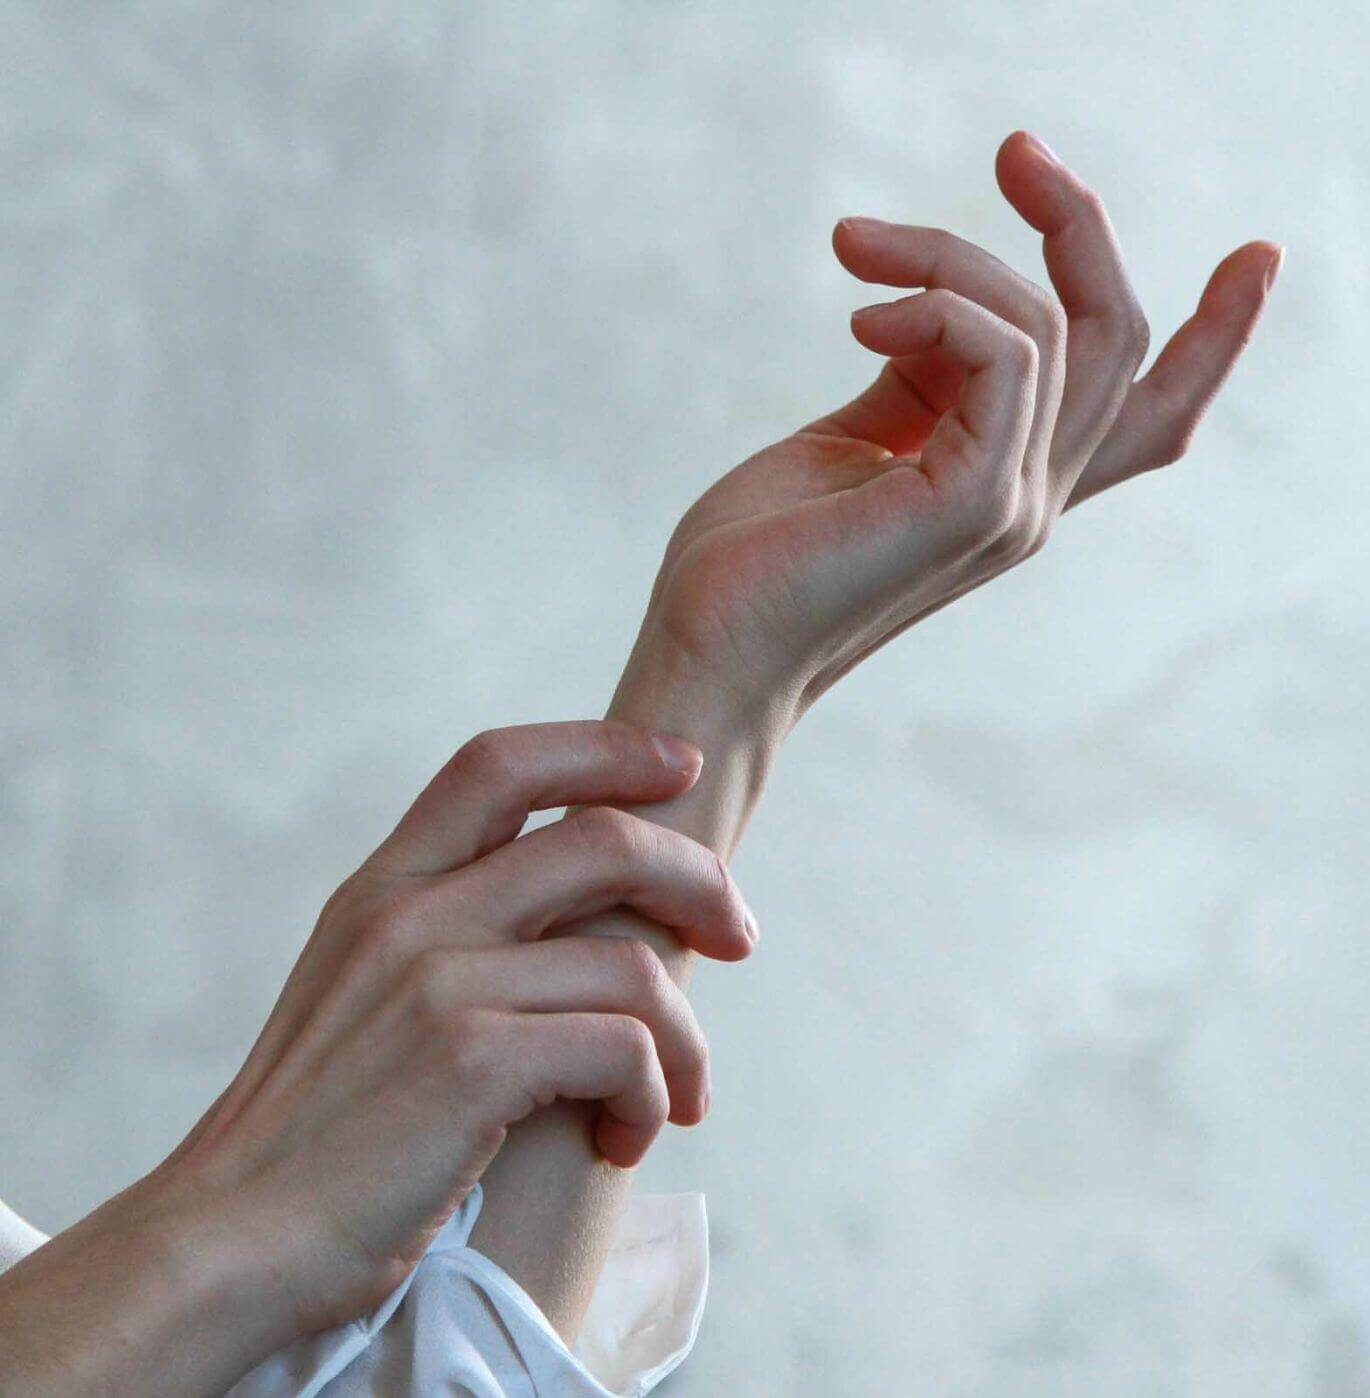 Blurred background with a close-up of two hands with dry skin